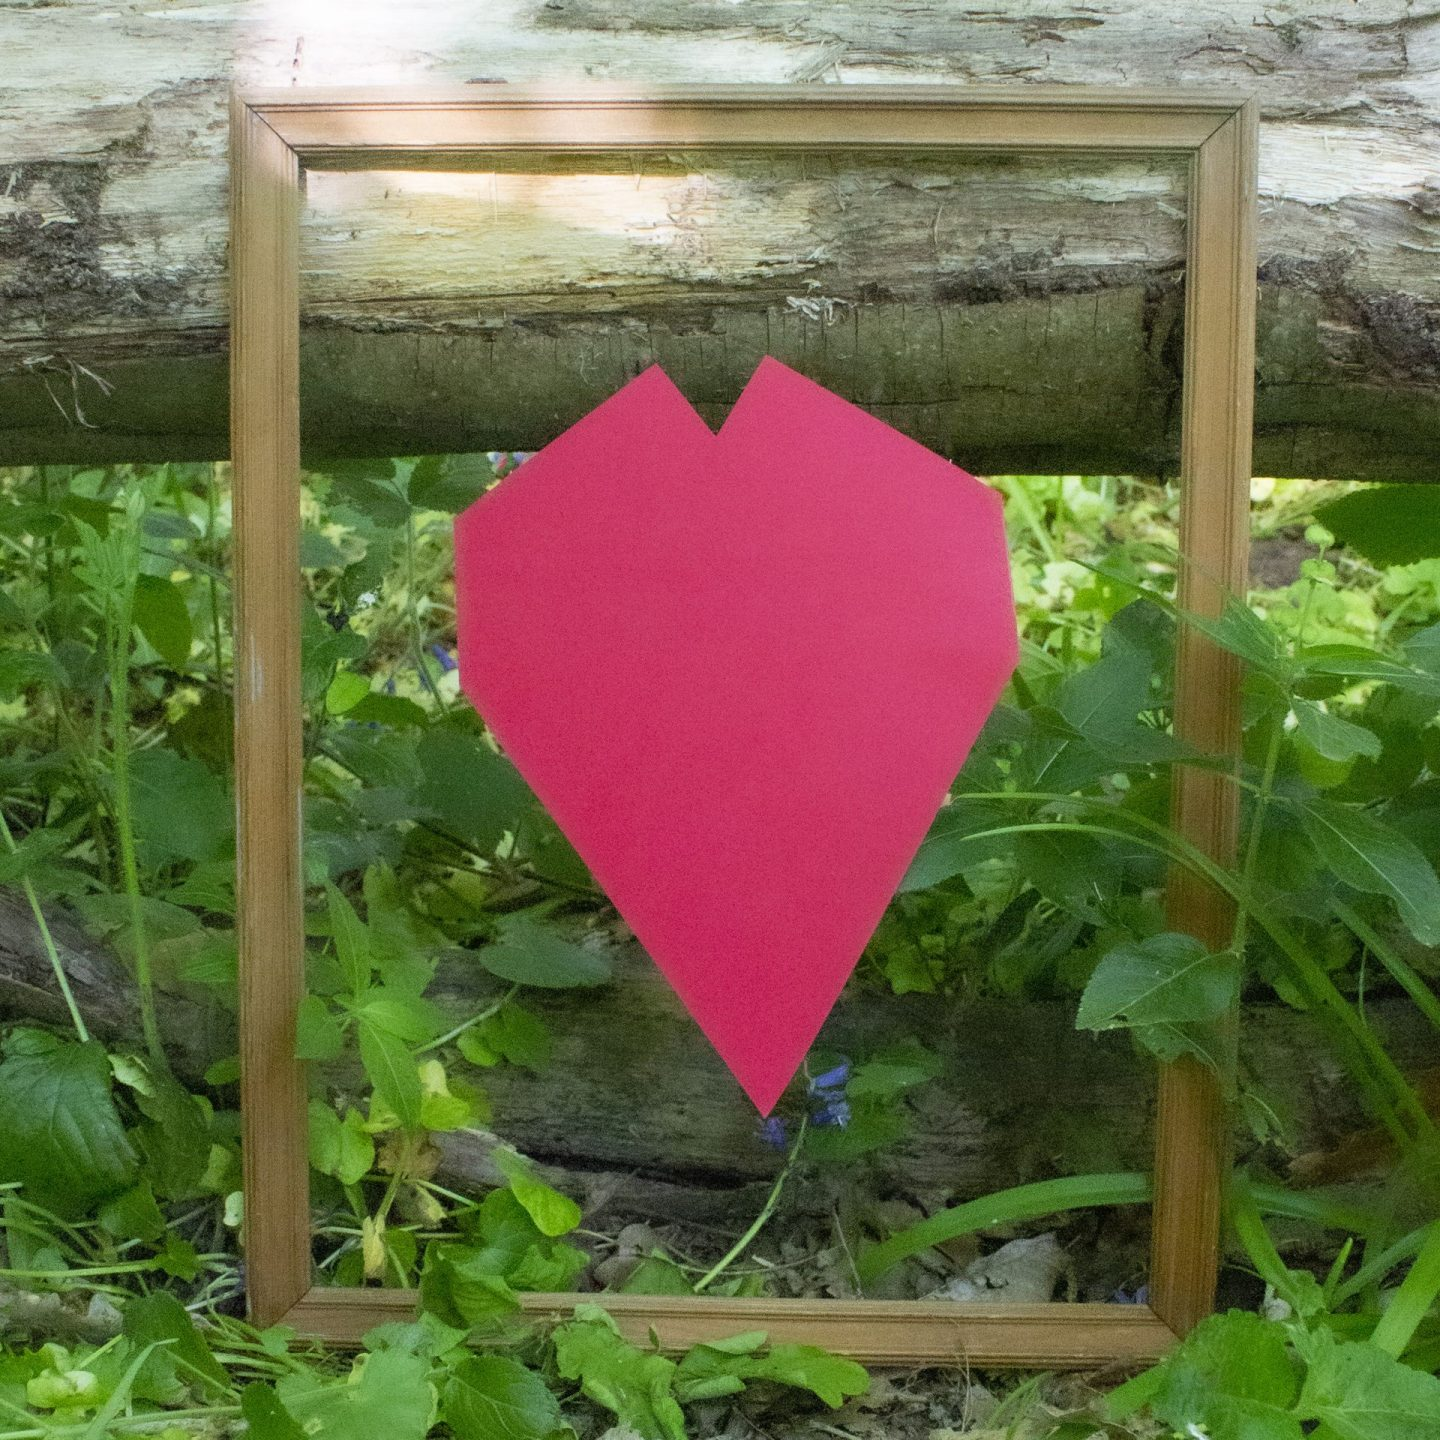 Framed picture of a cardboard heart, #SpreadFactsNotFear, IFRC, Spread Facts Not fear, International Federation of the Red Cross and Crescent,